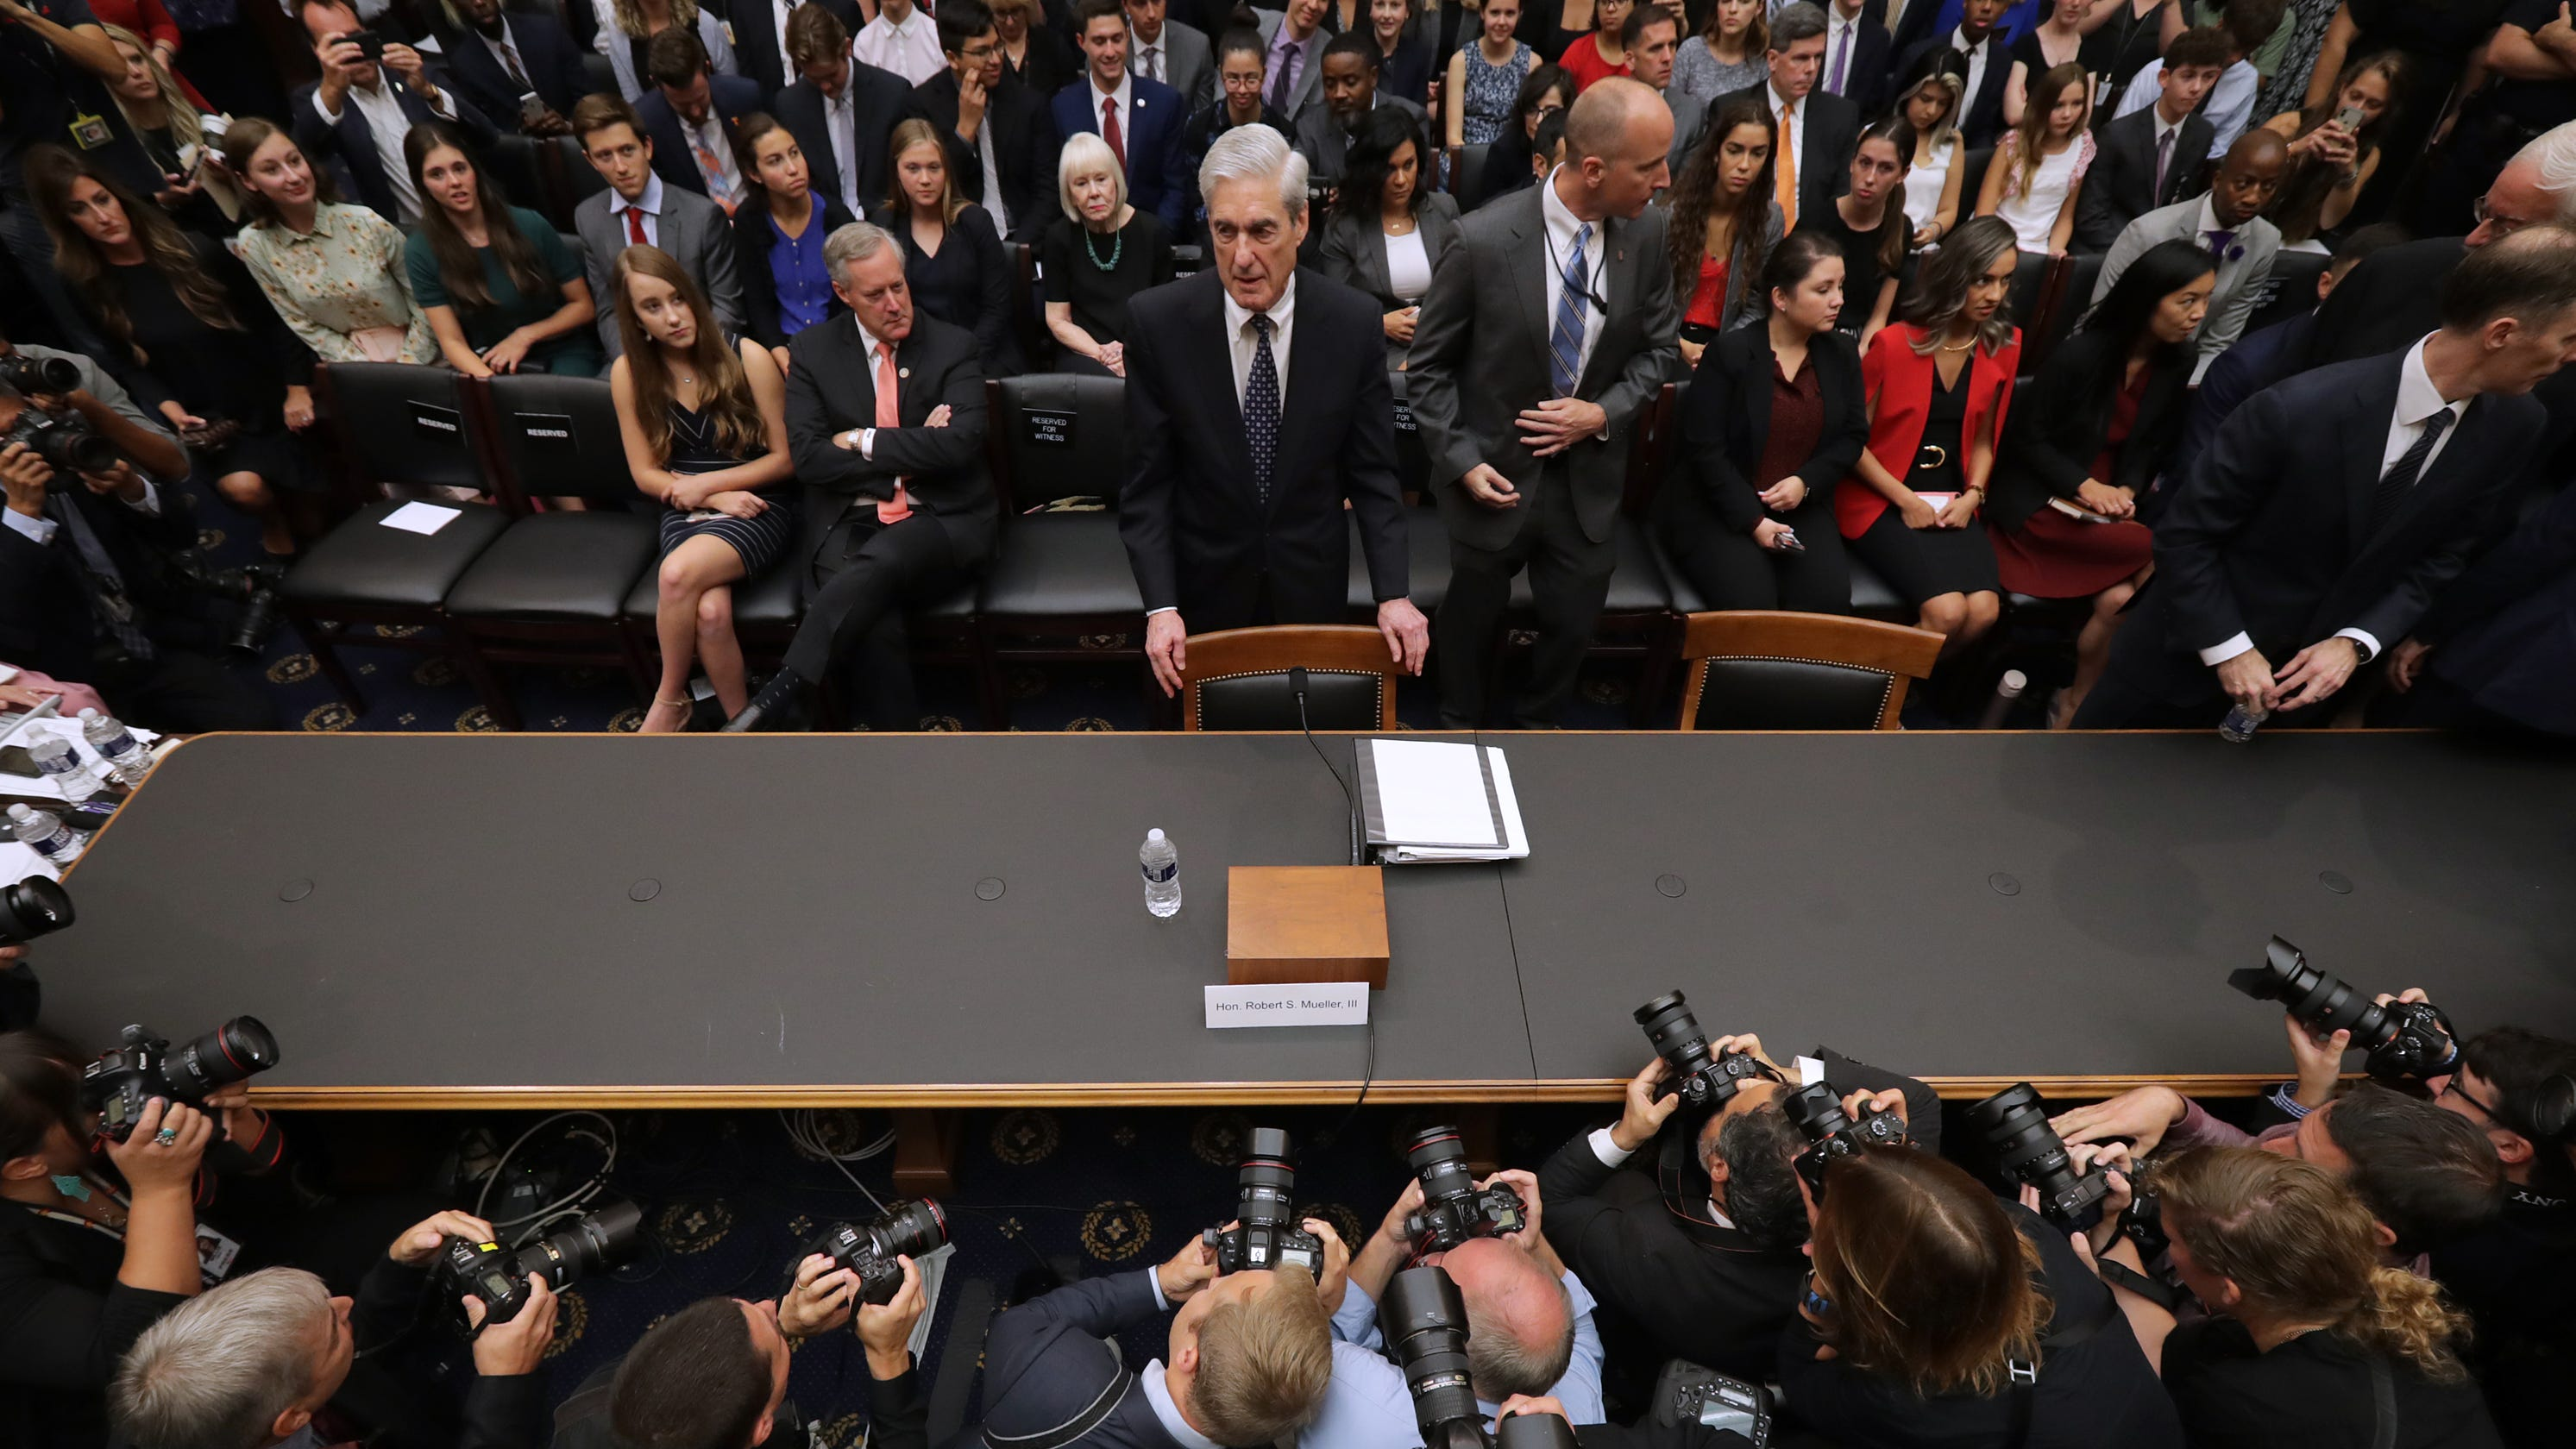 What we learned from Robert Mueller: Seven hours, zero bombshells and everyone declares victory